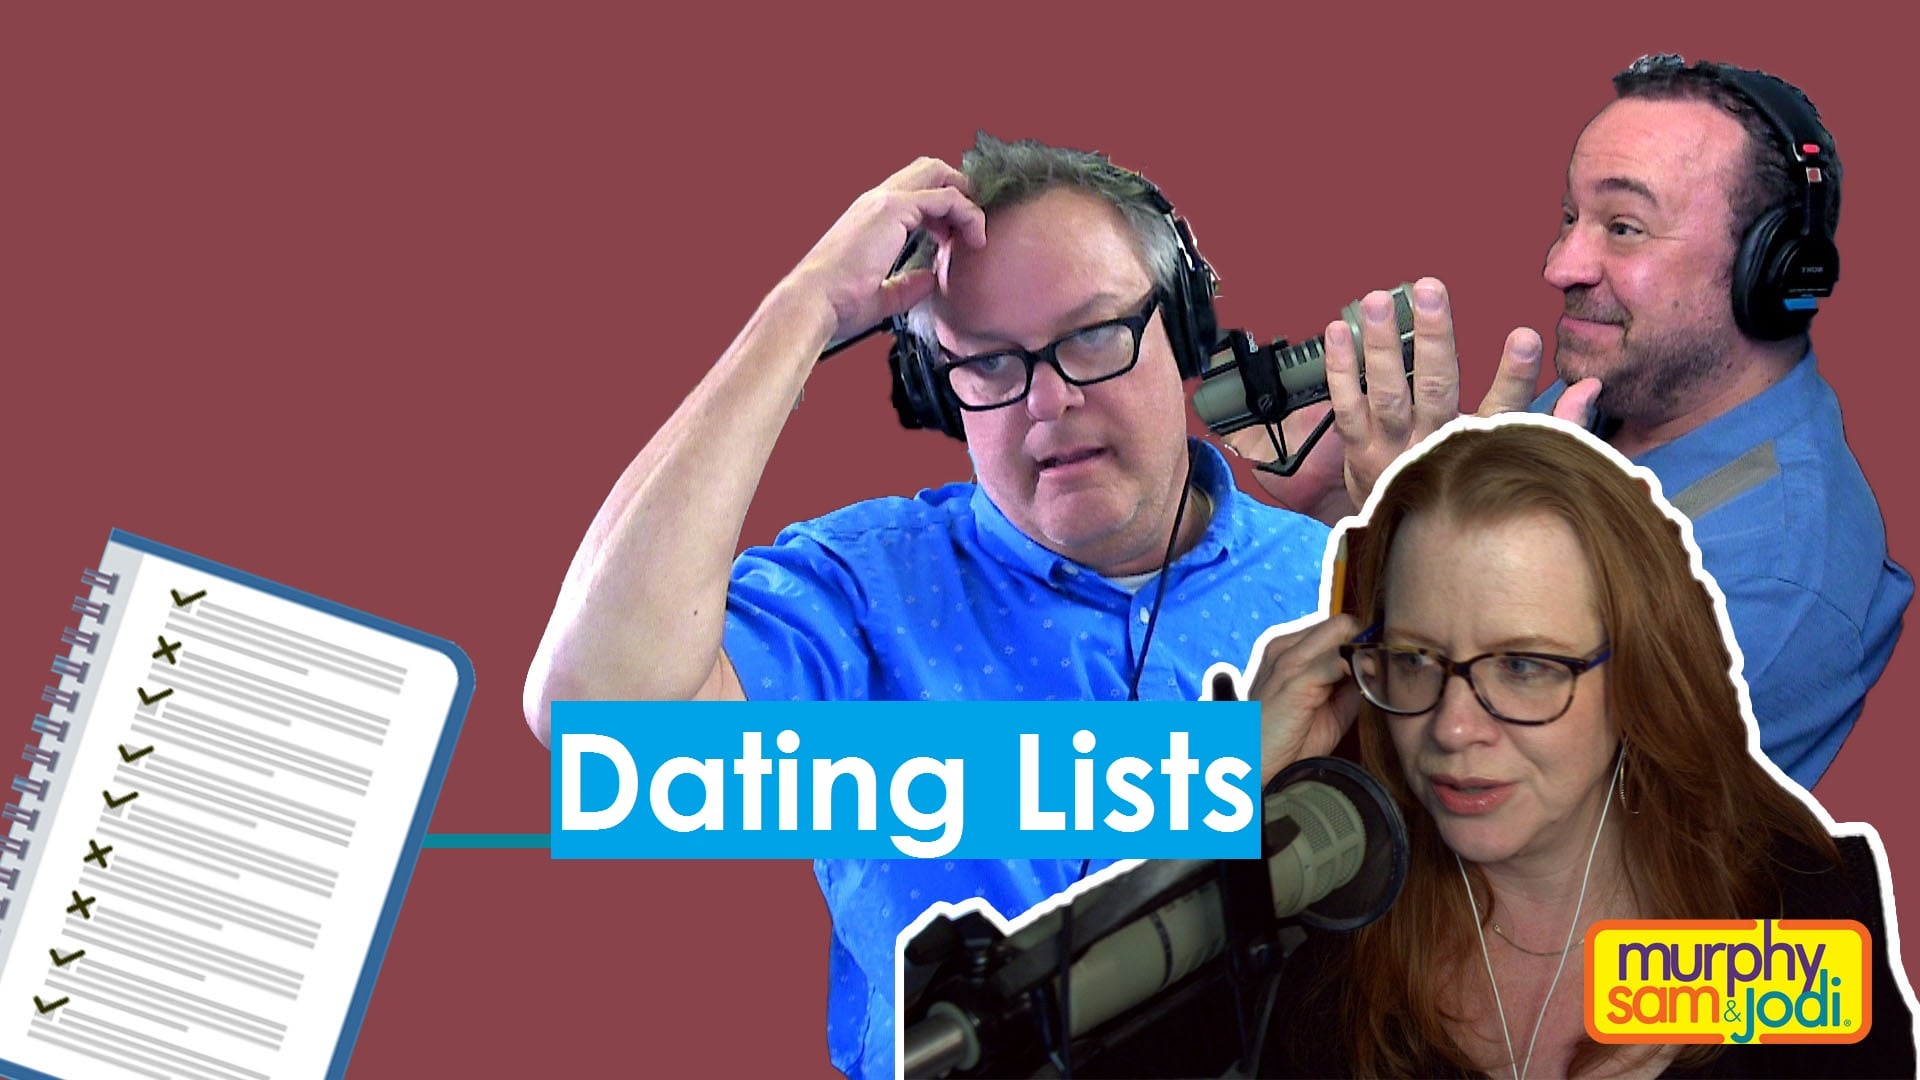 PODCAST: DATING LISTS